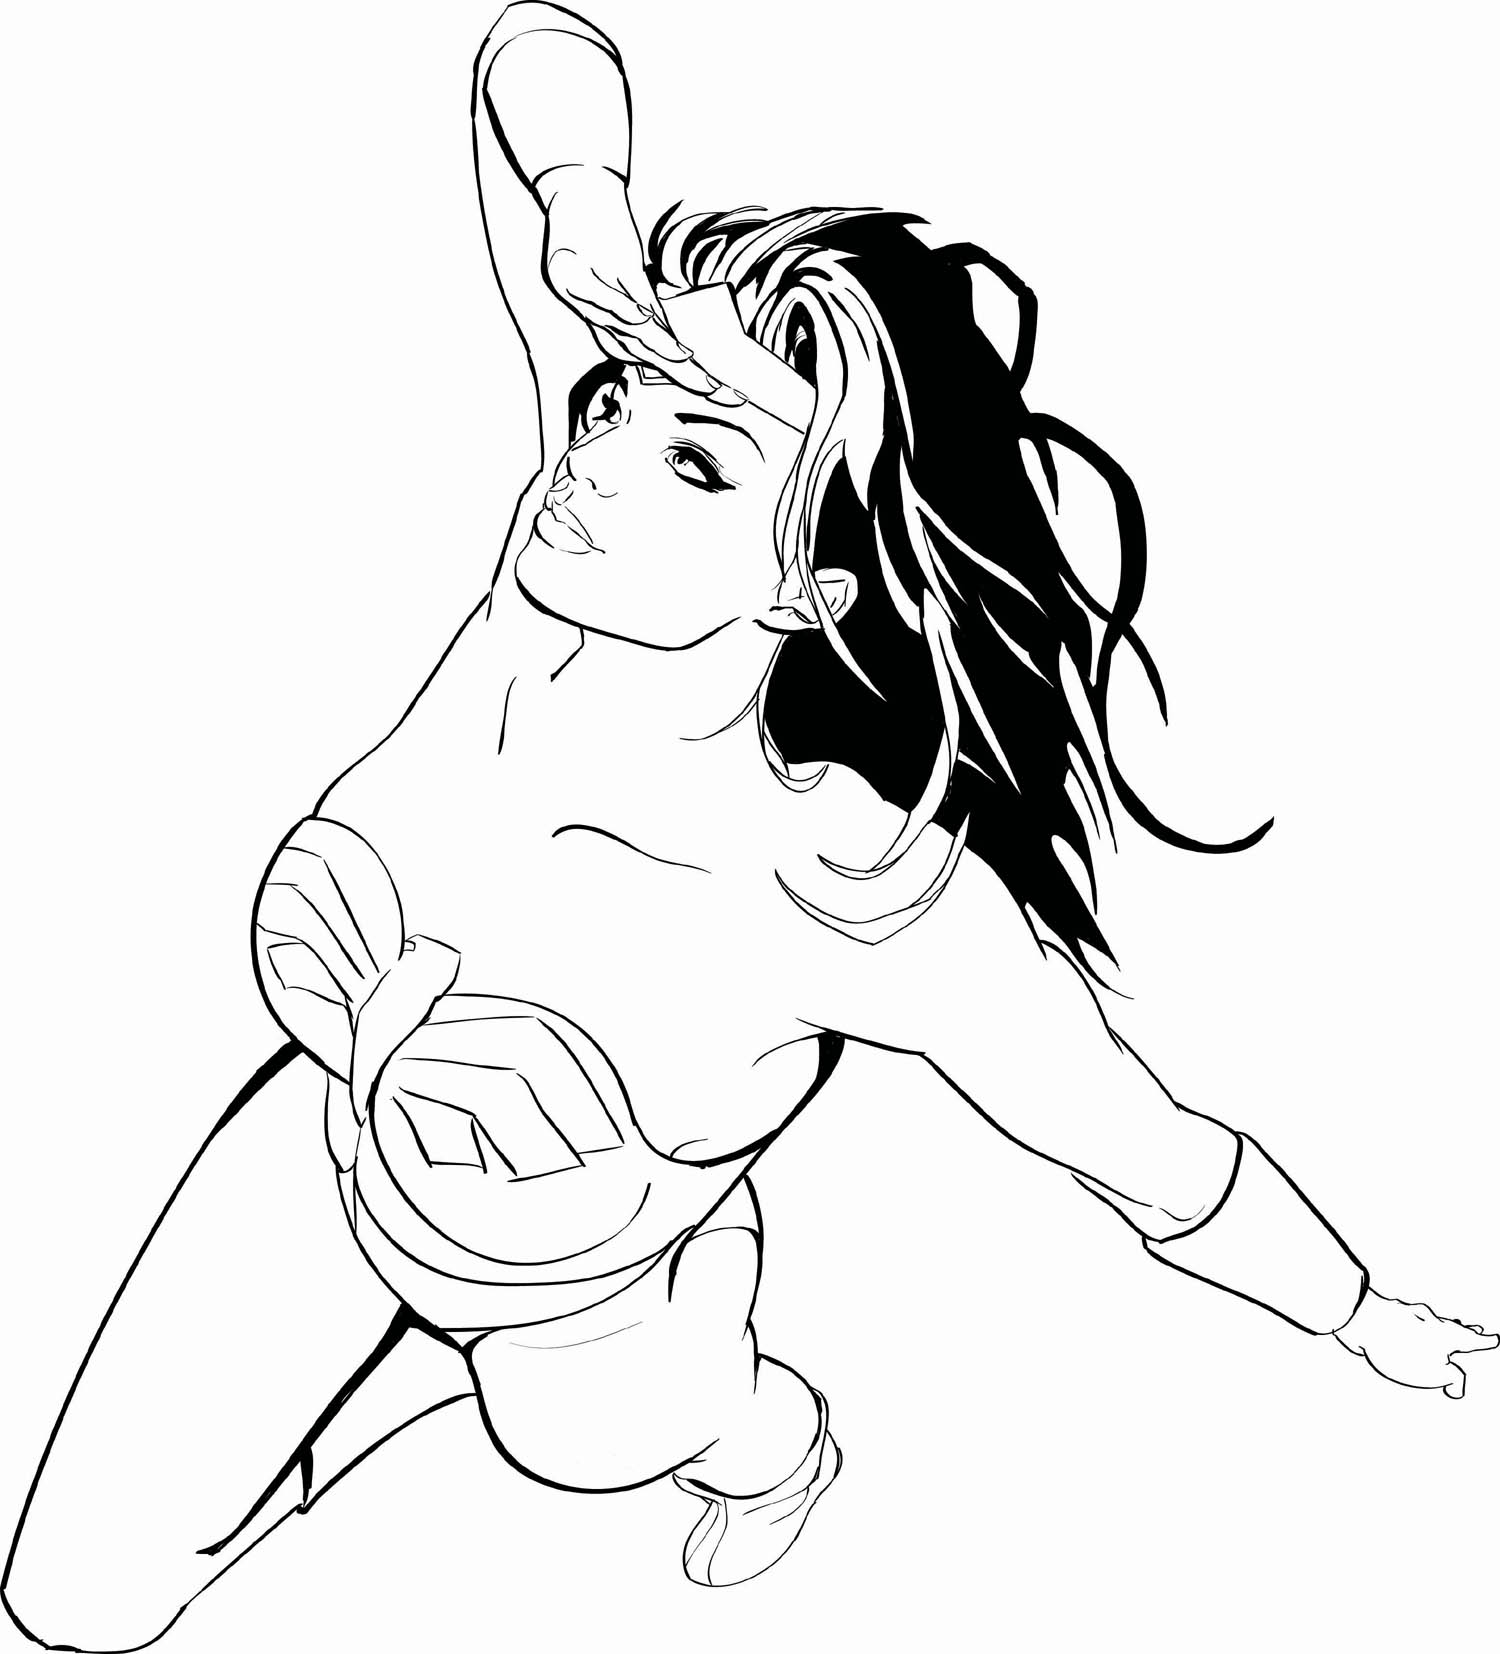 Girl Superhero Drawing at GetDrawings.com | Free for personal use ...